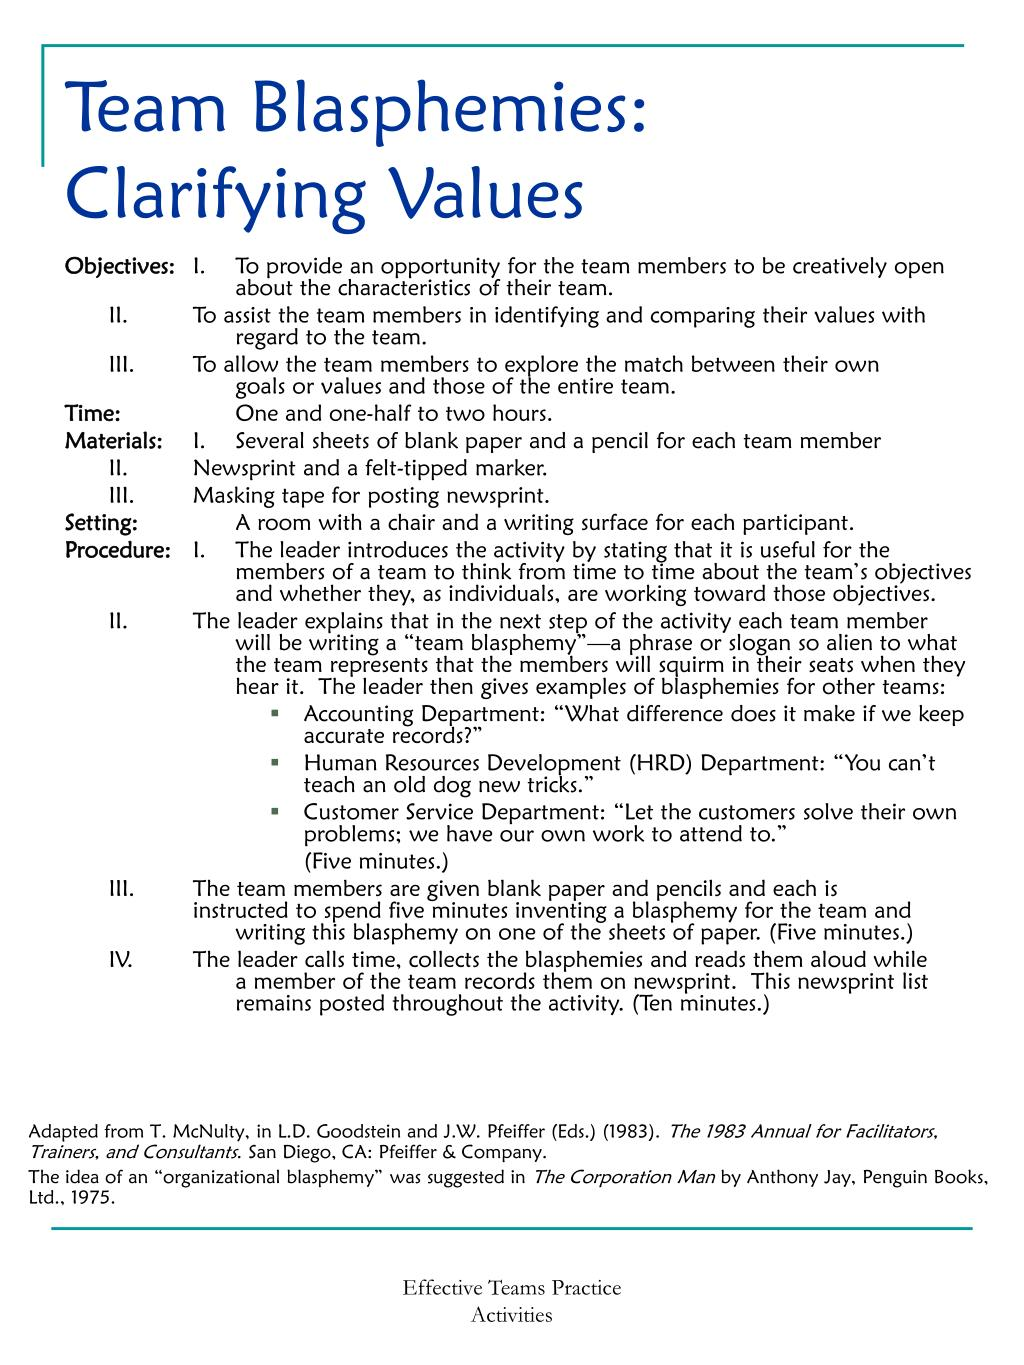 Team Blasphemies: Clarifying Values